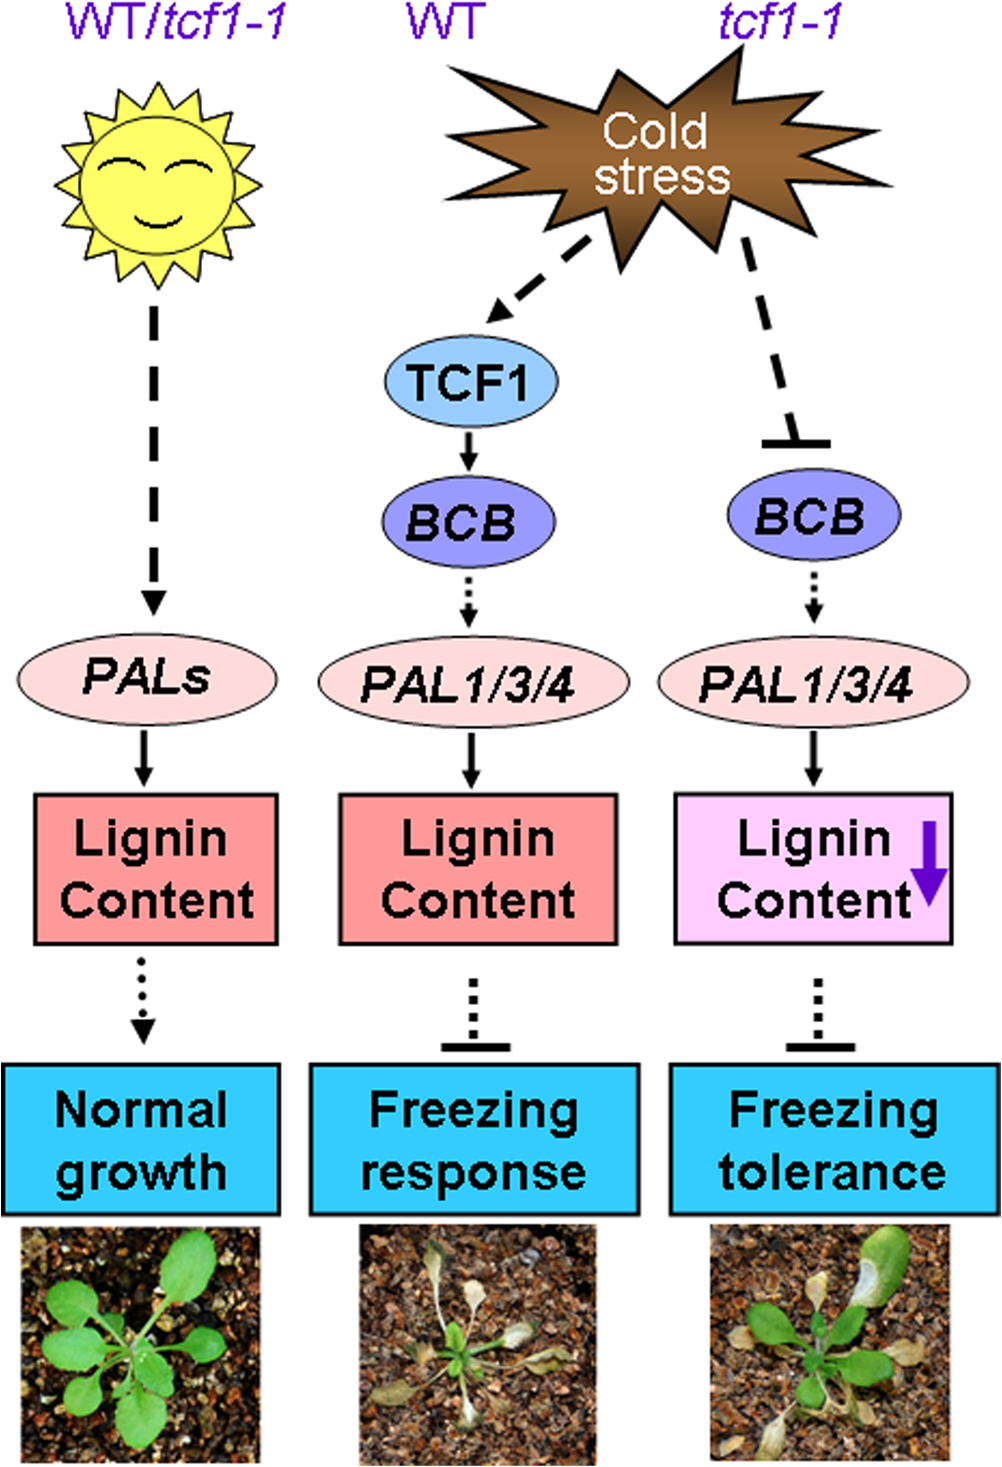 A proposed model for TCF1 in the <i>Arabidopsis</i> response to low temperature.